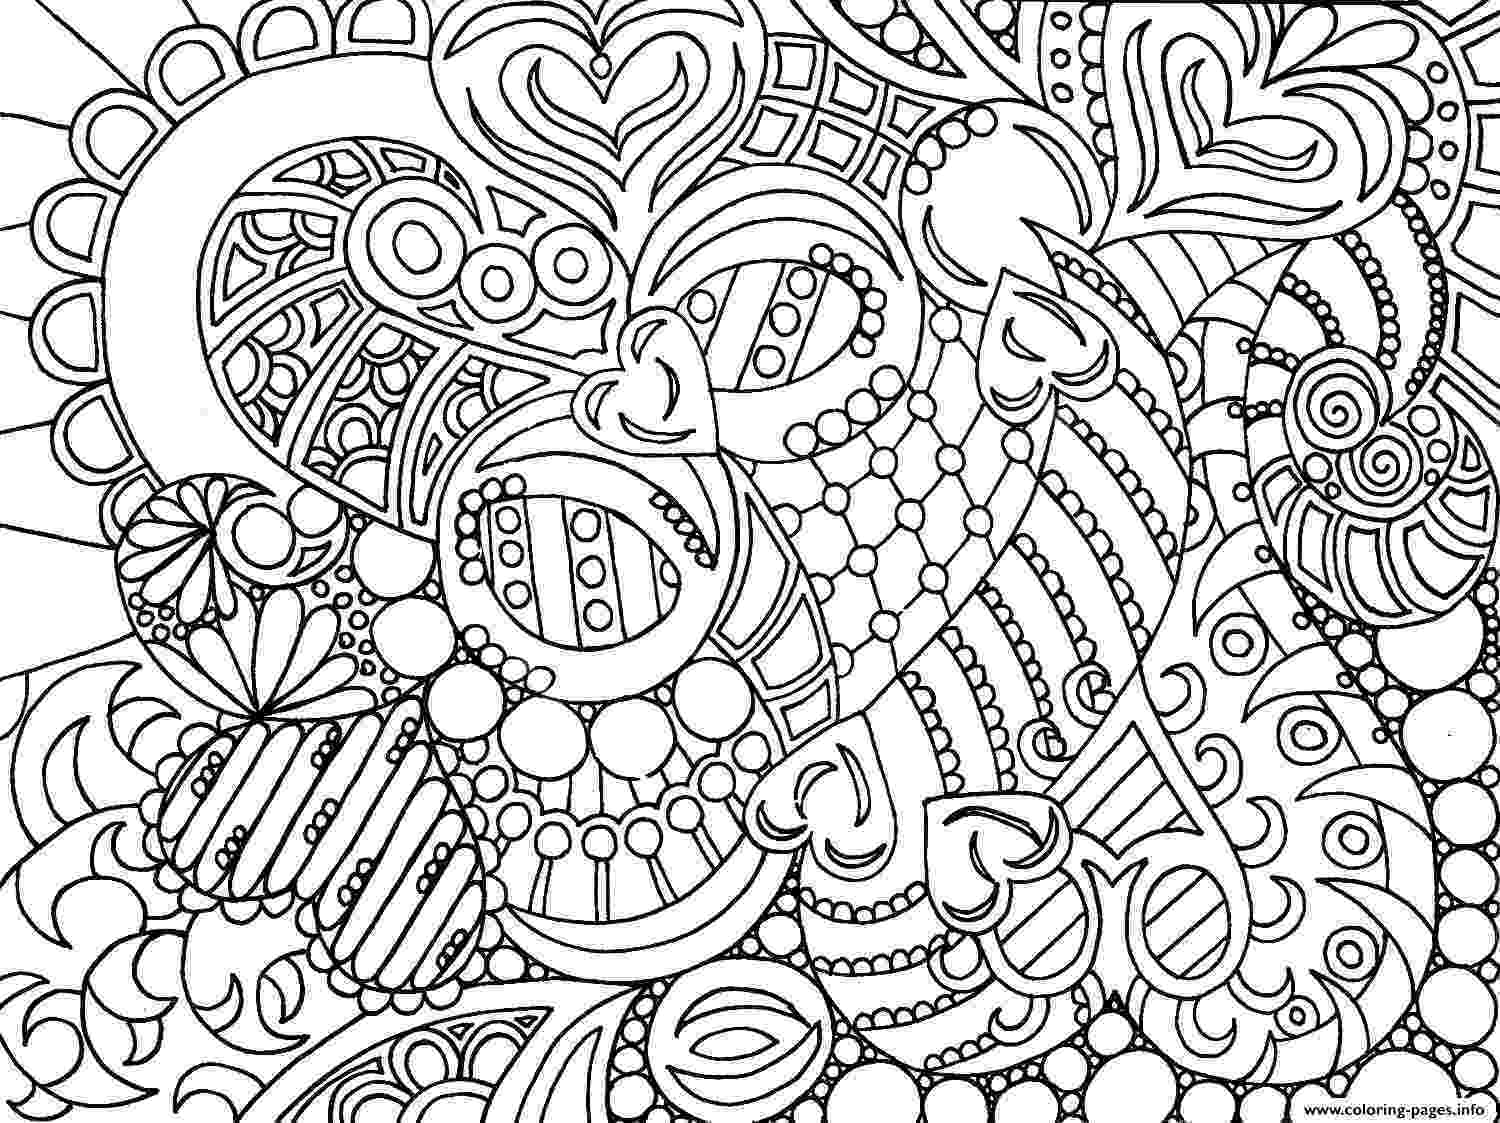 cool coloring pages printable cool design coloring pages getcoloringpagescom pages printable coloring cool